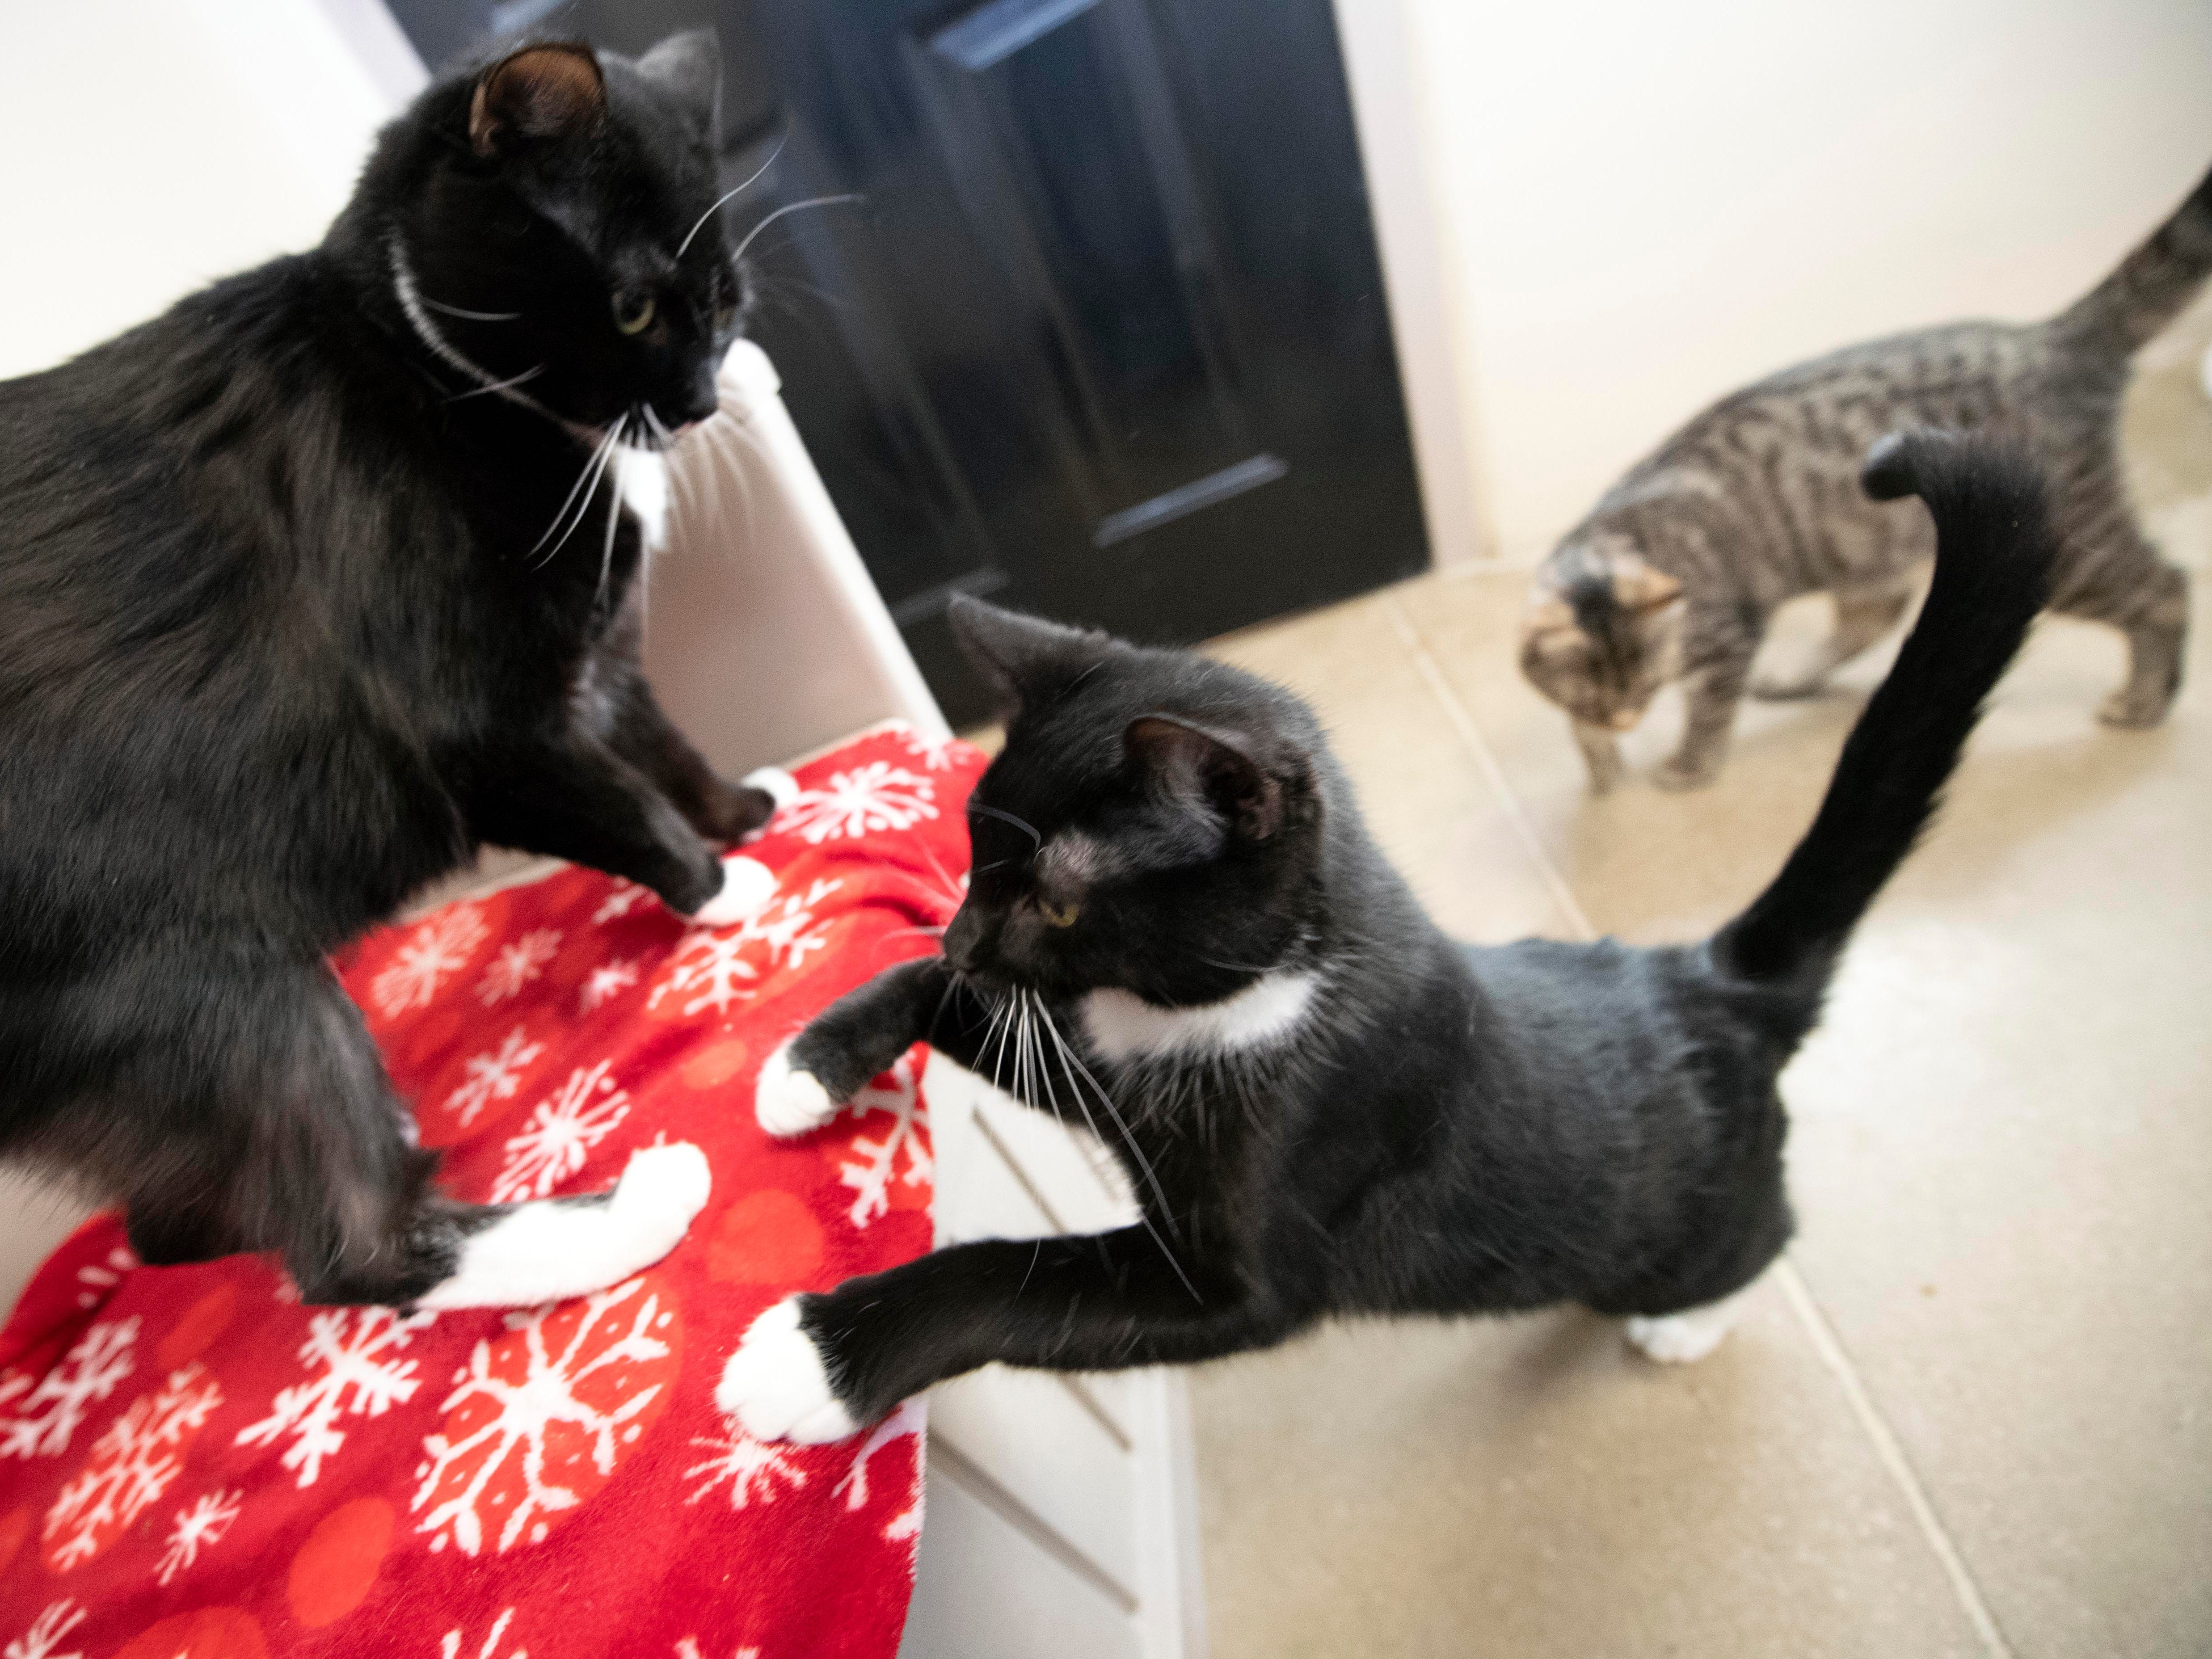 Cats play in one of the 'cat condos' at the York County SPCA.